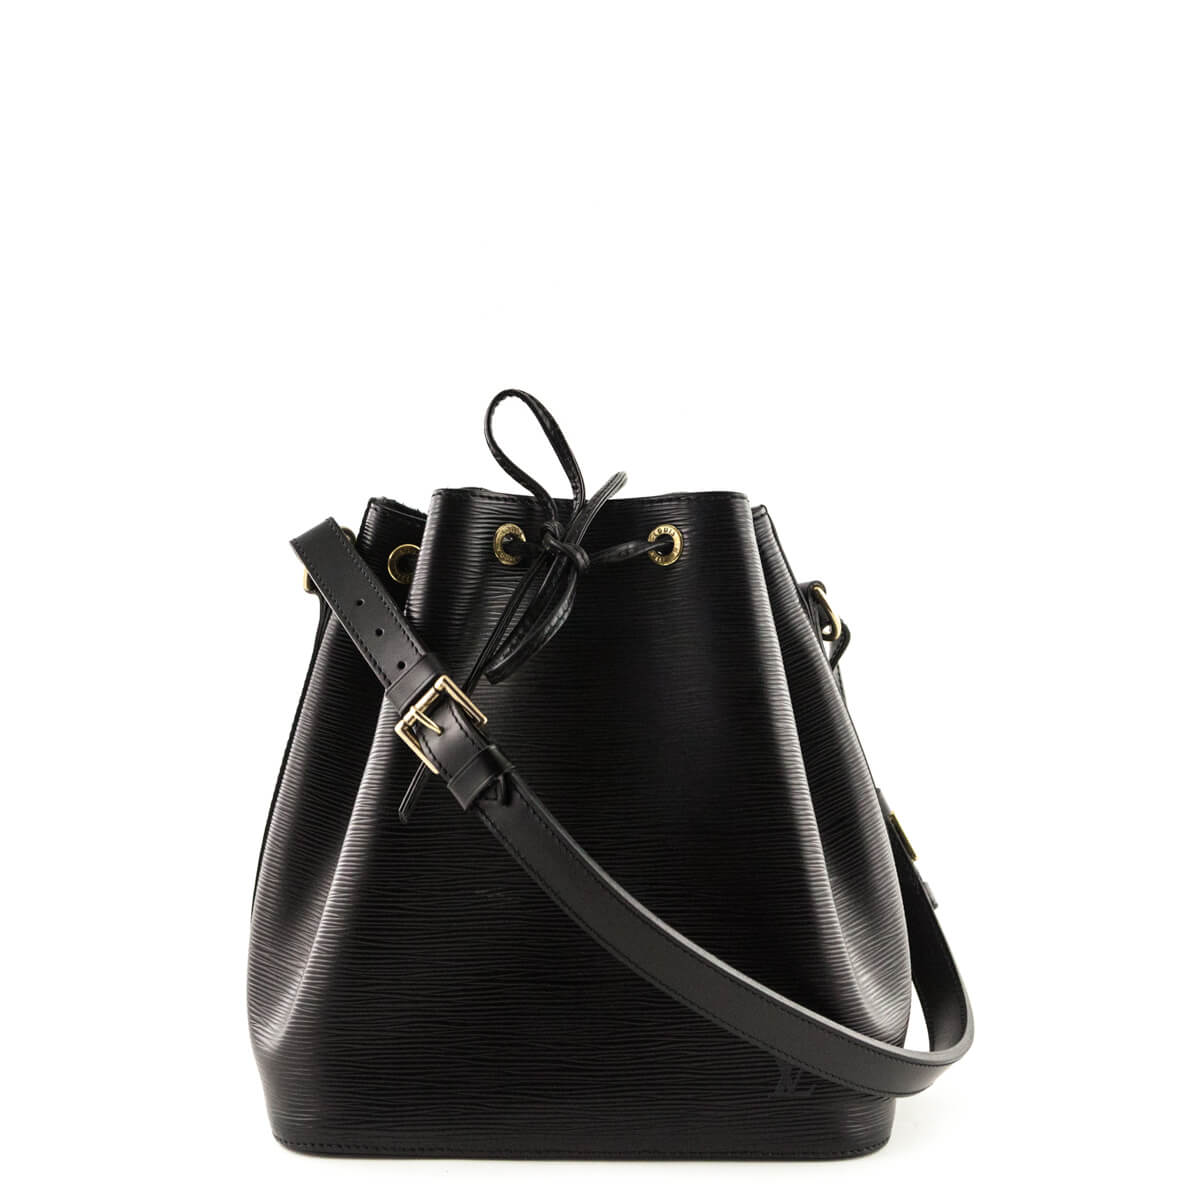 e70217e717 Louis Vuitton Epi Leather Petit Noe Bucket Bag - LOVE that BAG - Preowned  Authentic Designer ...